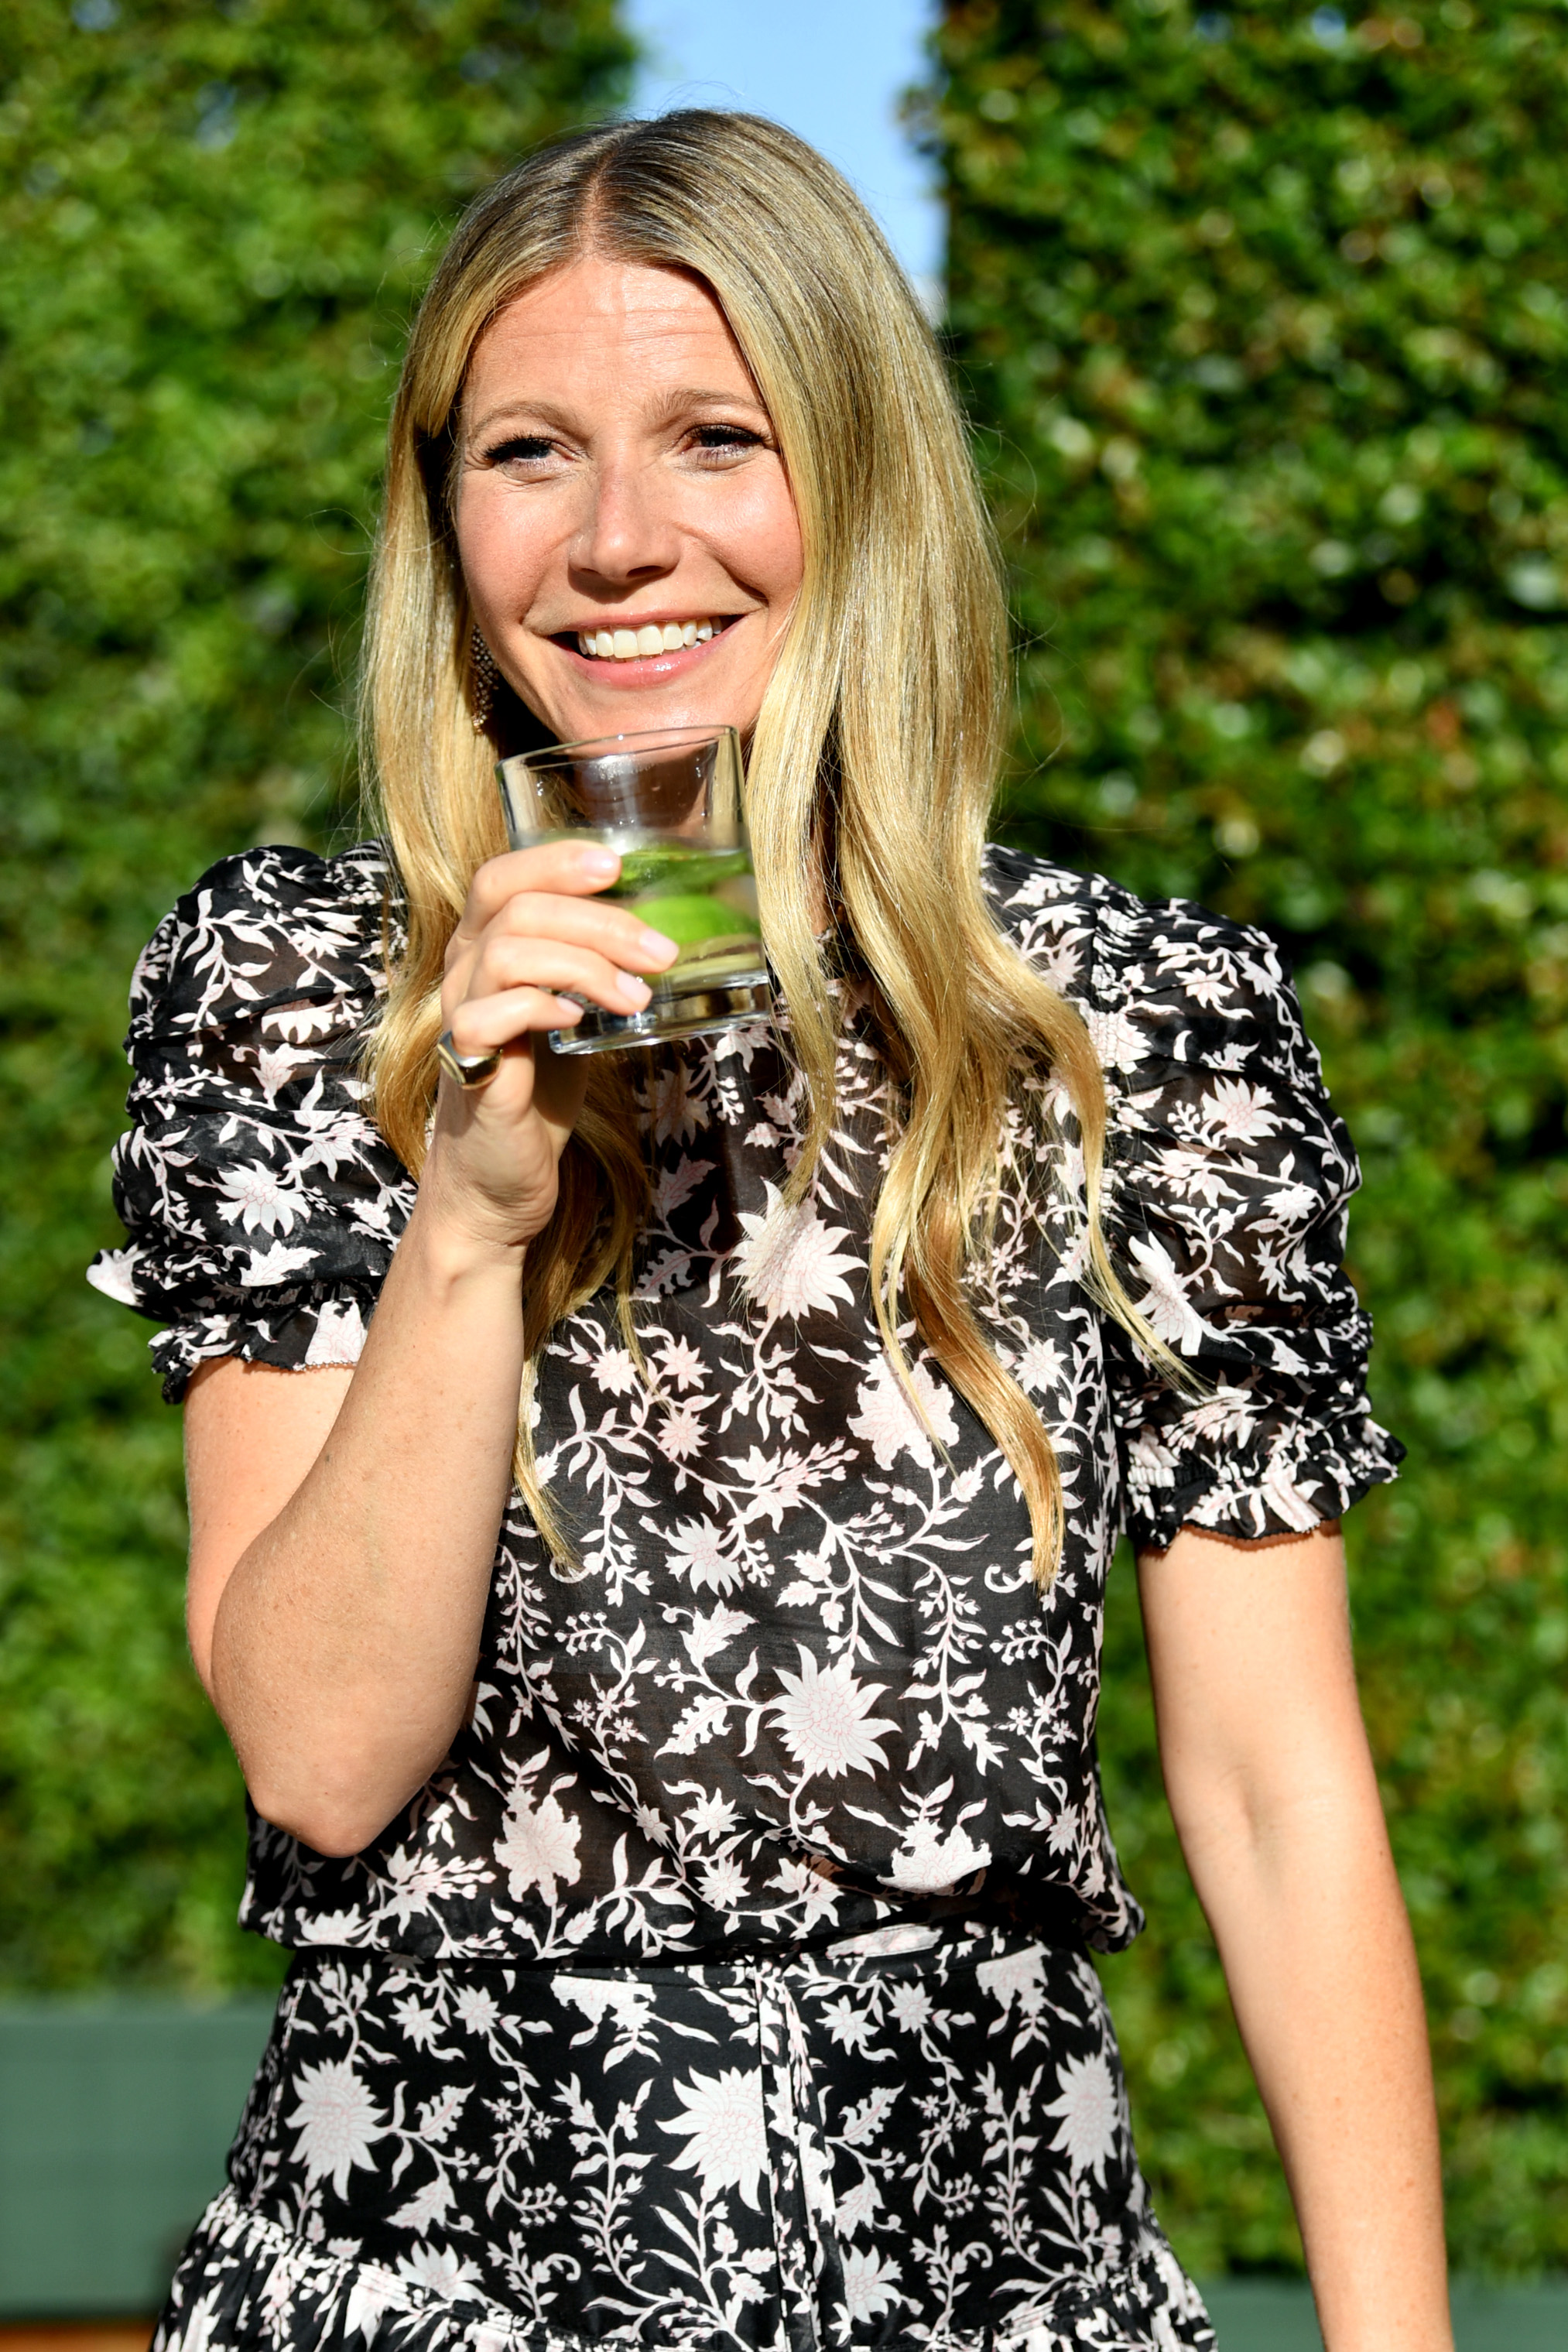 Gwyneth Paltrow attends the In goop Health Summit at 3Labs in 2018 in Culver City, California.